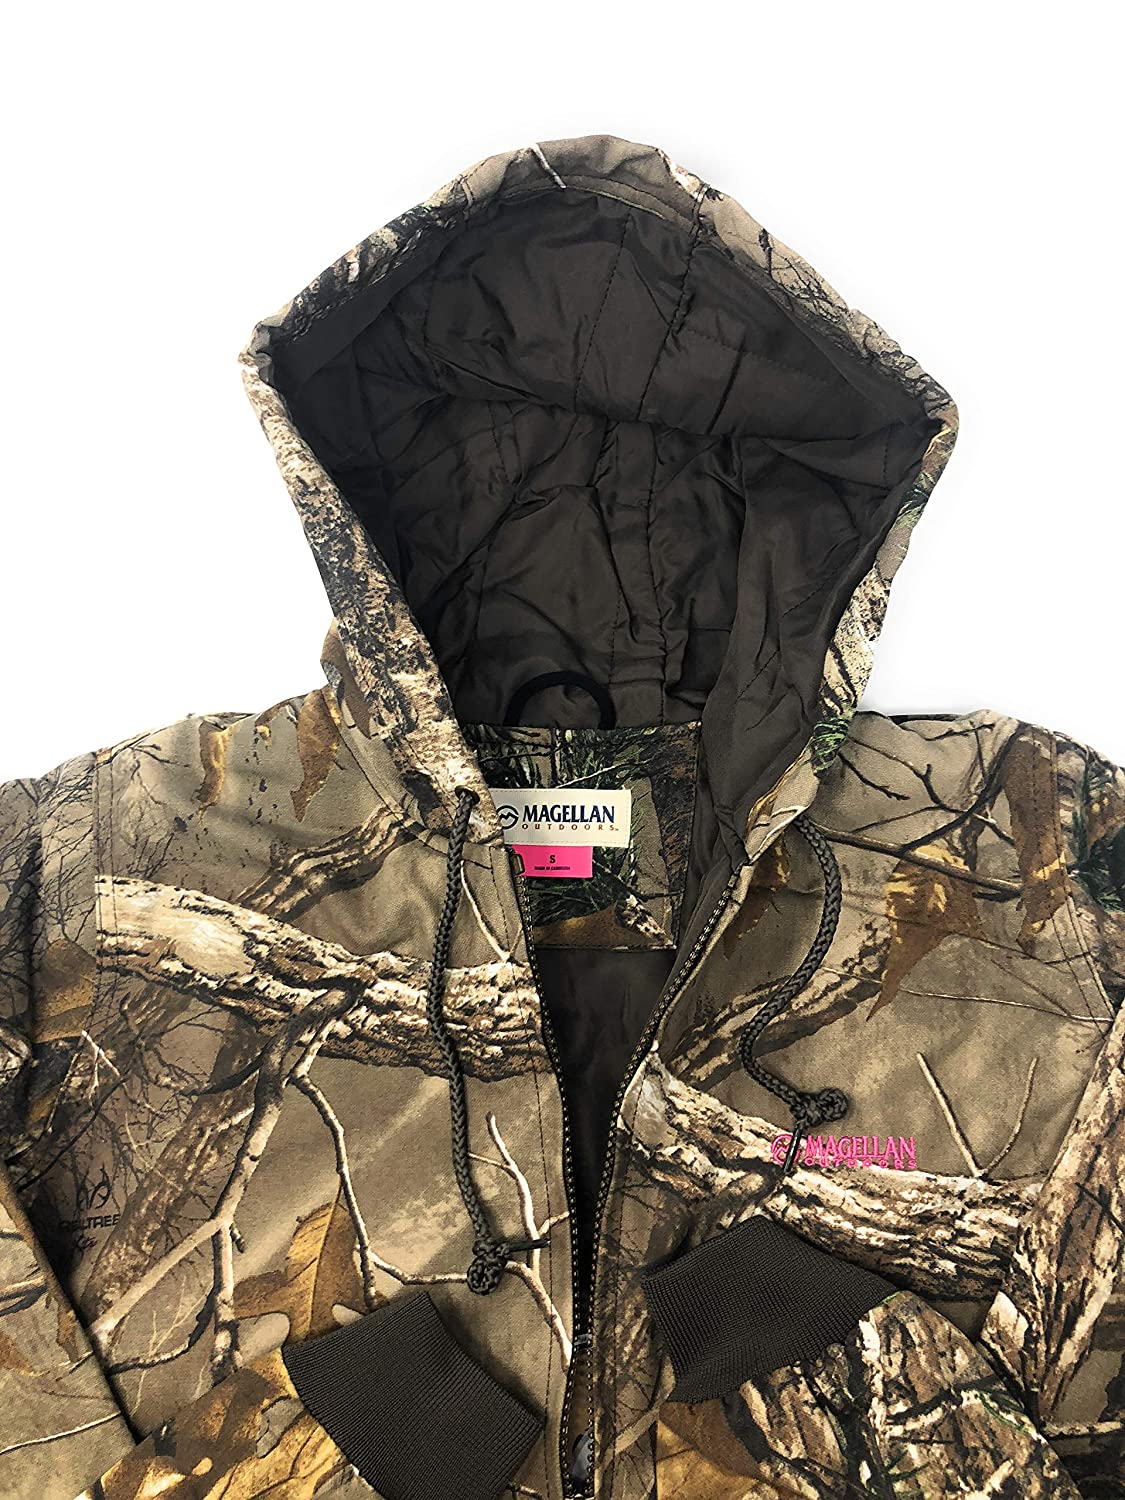 3598c9b71e506 Amazon.com: Magellan Outdoors Women's Realtree Camouflage Hunting Jacket:  Clothing